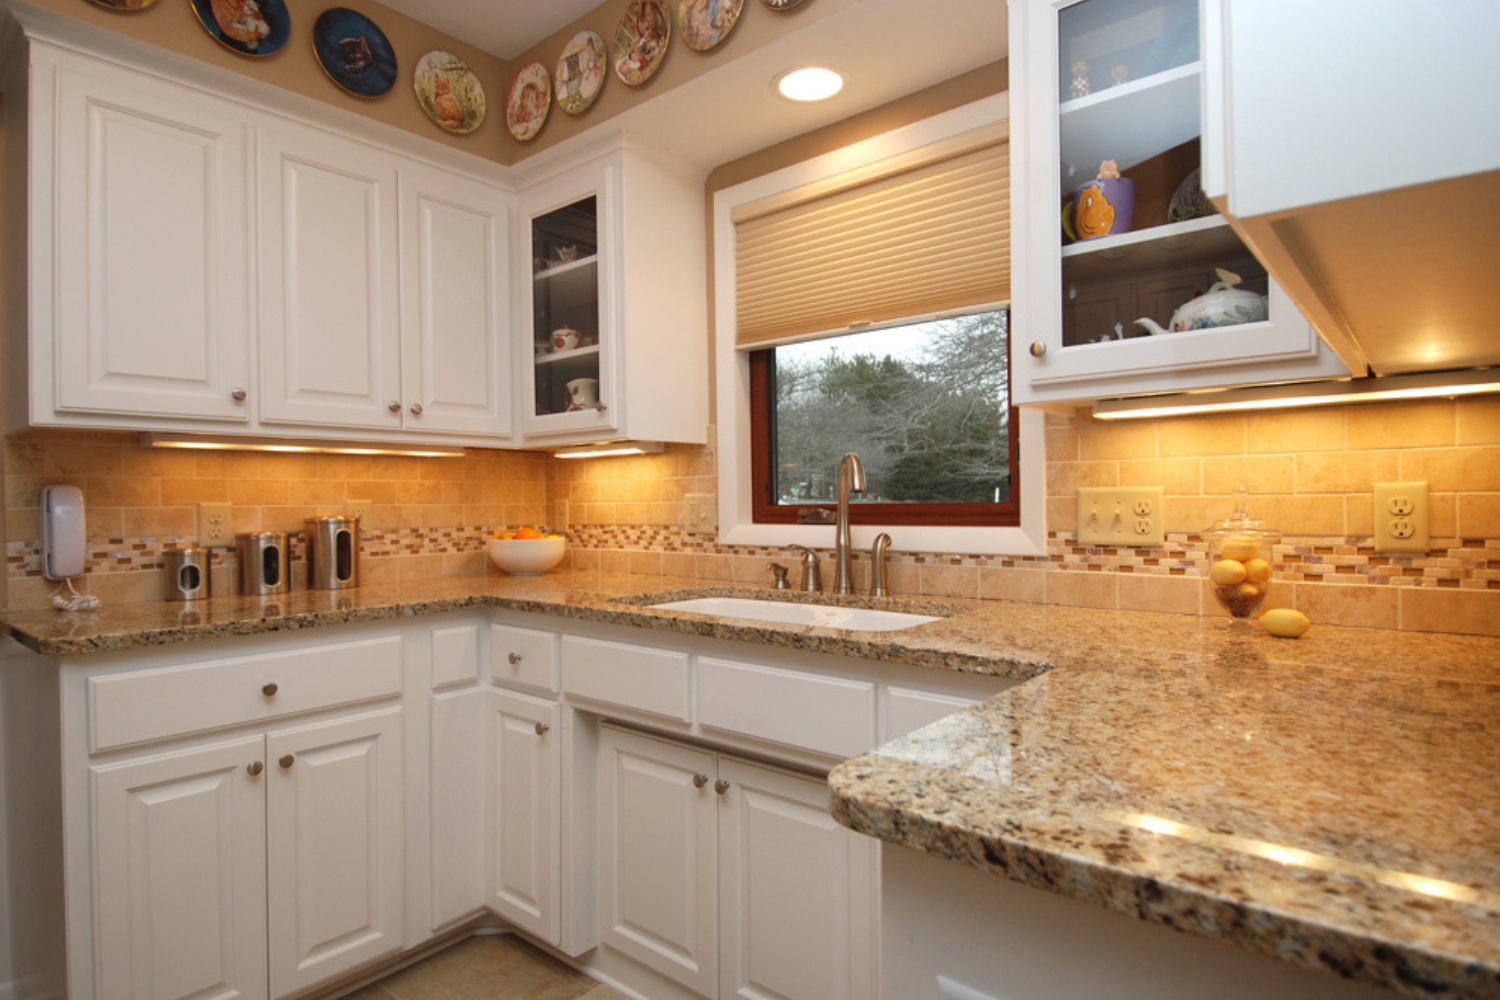 Space Above Kitchen Cabinets How to Utilize the Space Above Kitchen Cabinets   The Chuba Company